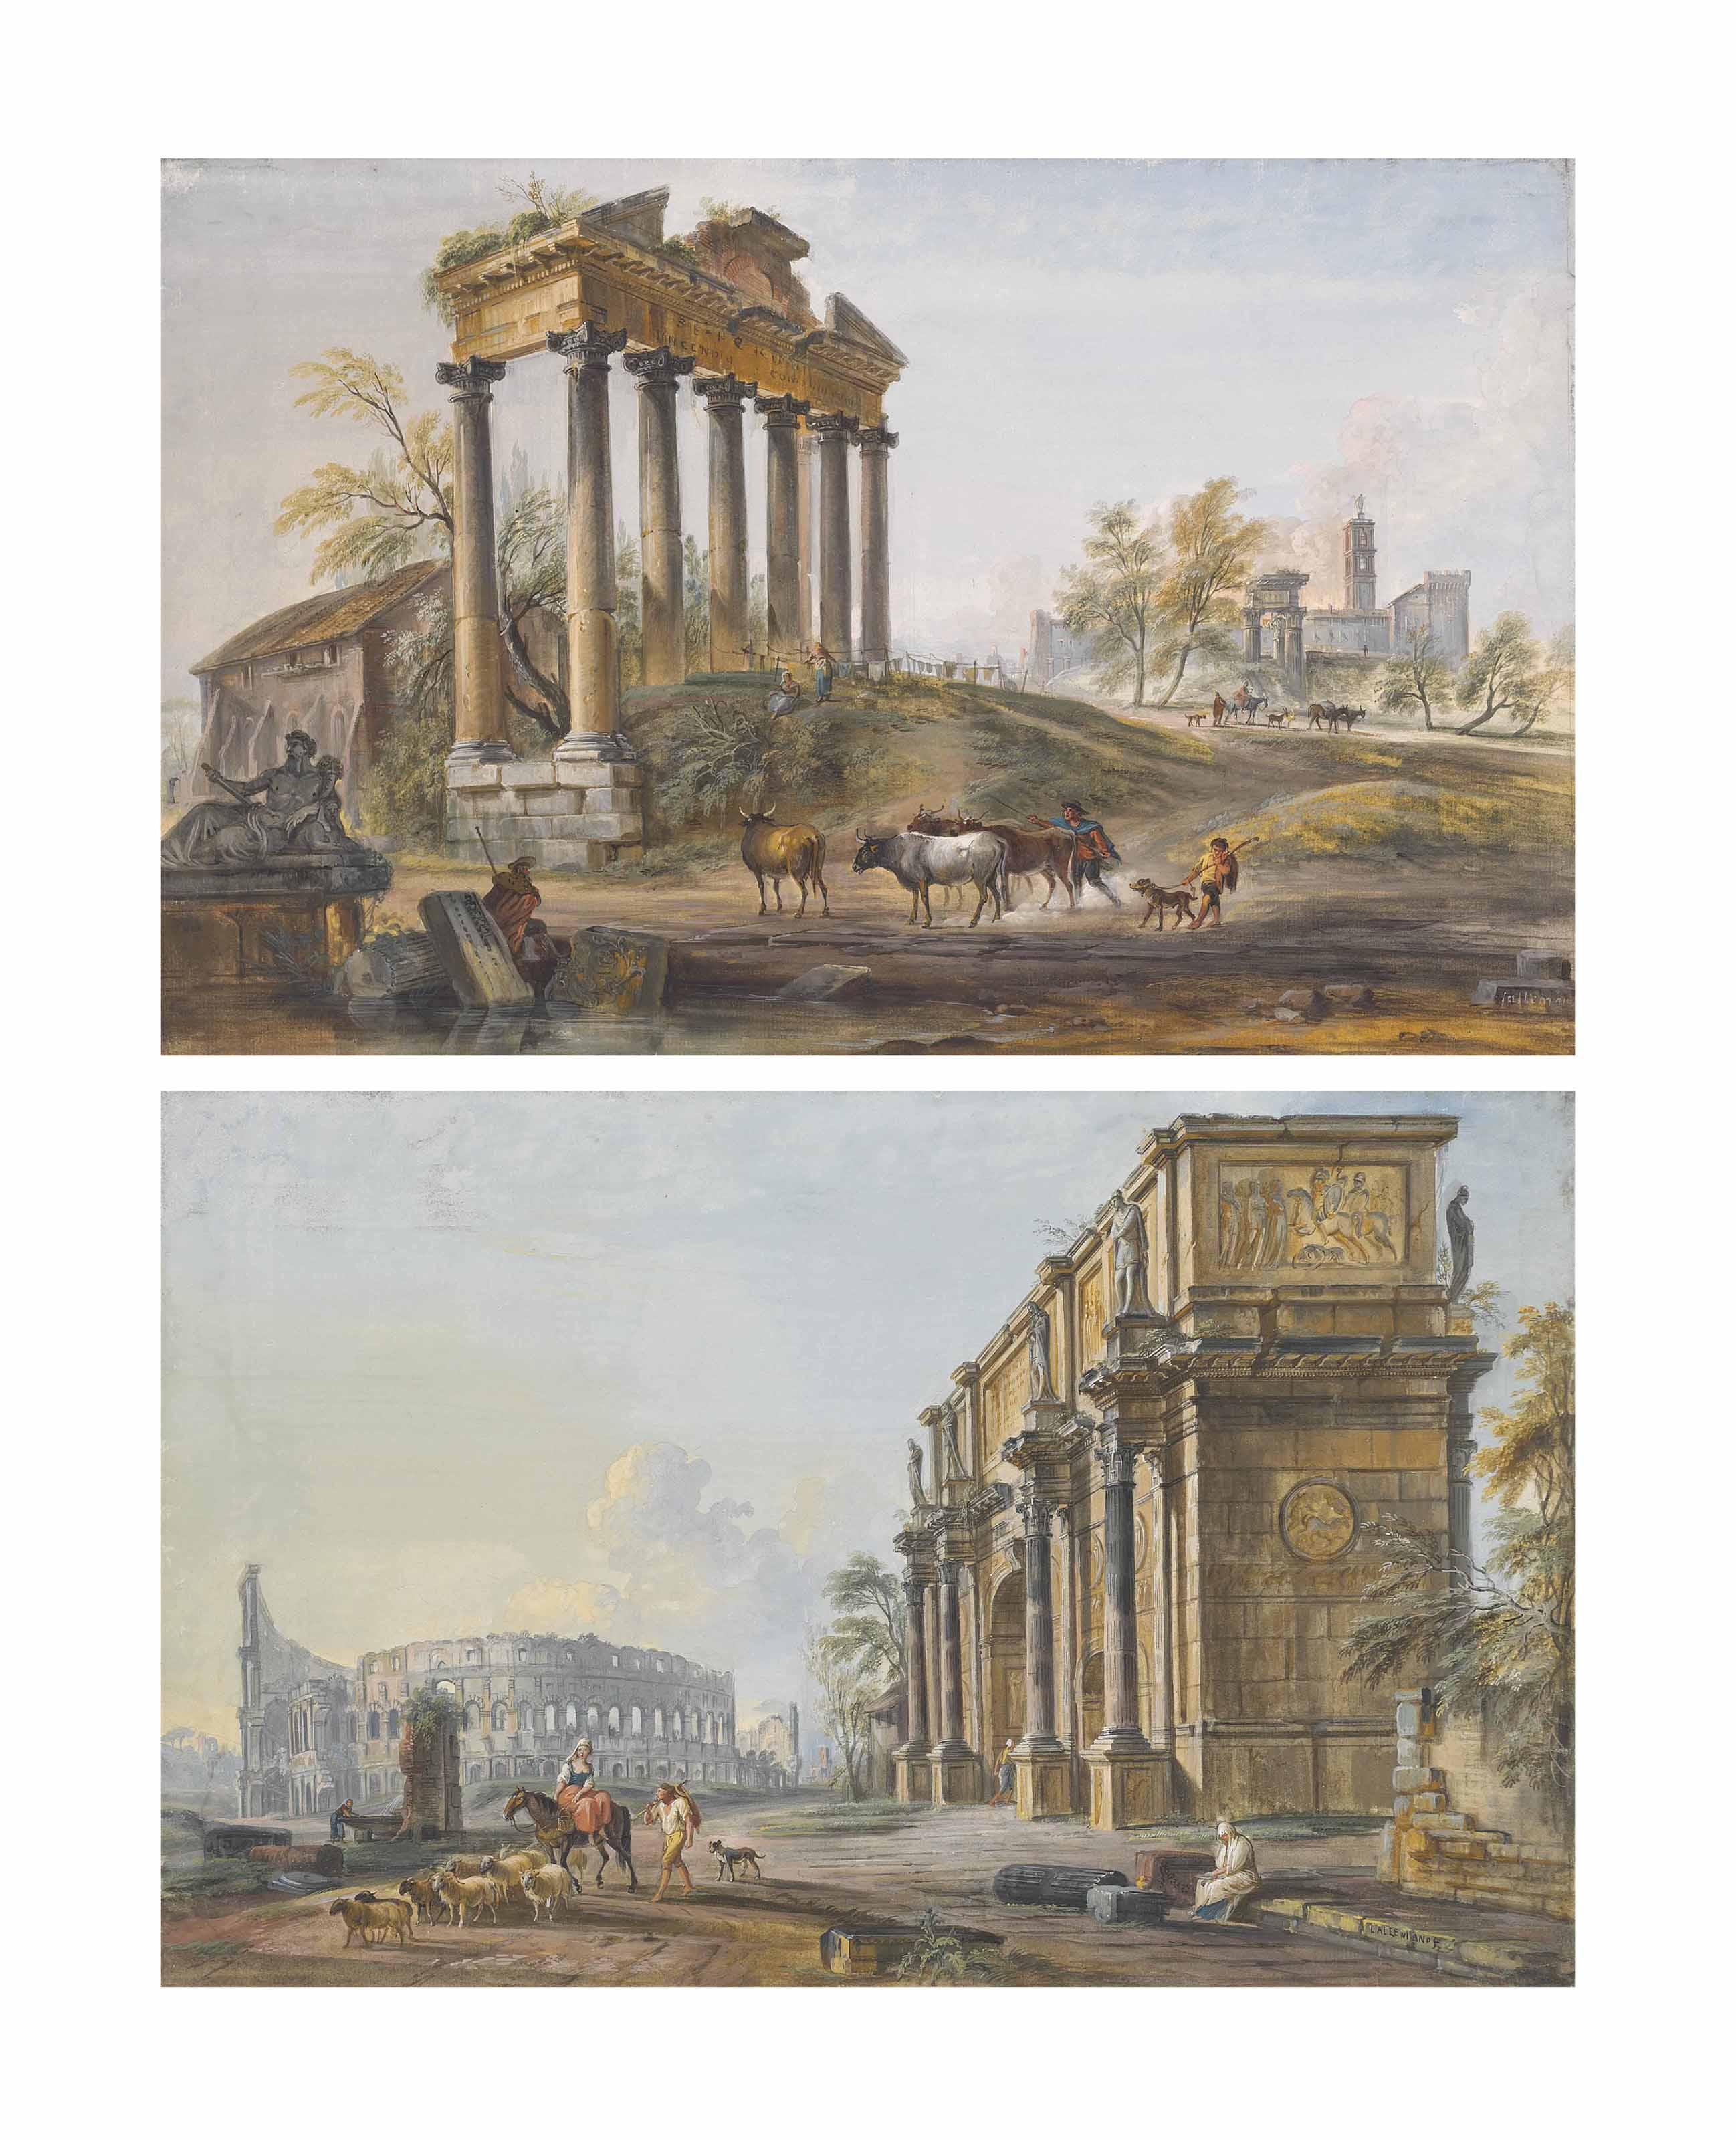 Morning: A view of the Forum Romanum with the Arch of Constantine and the Colosseum; and Afternoon: A view of the Forum Romanum with the Temple of Saturn and the Temple of Vespasian